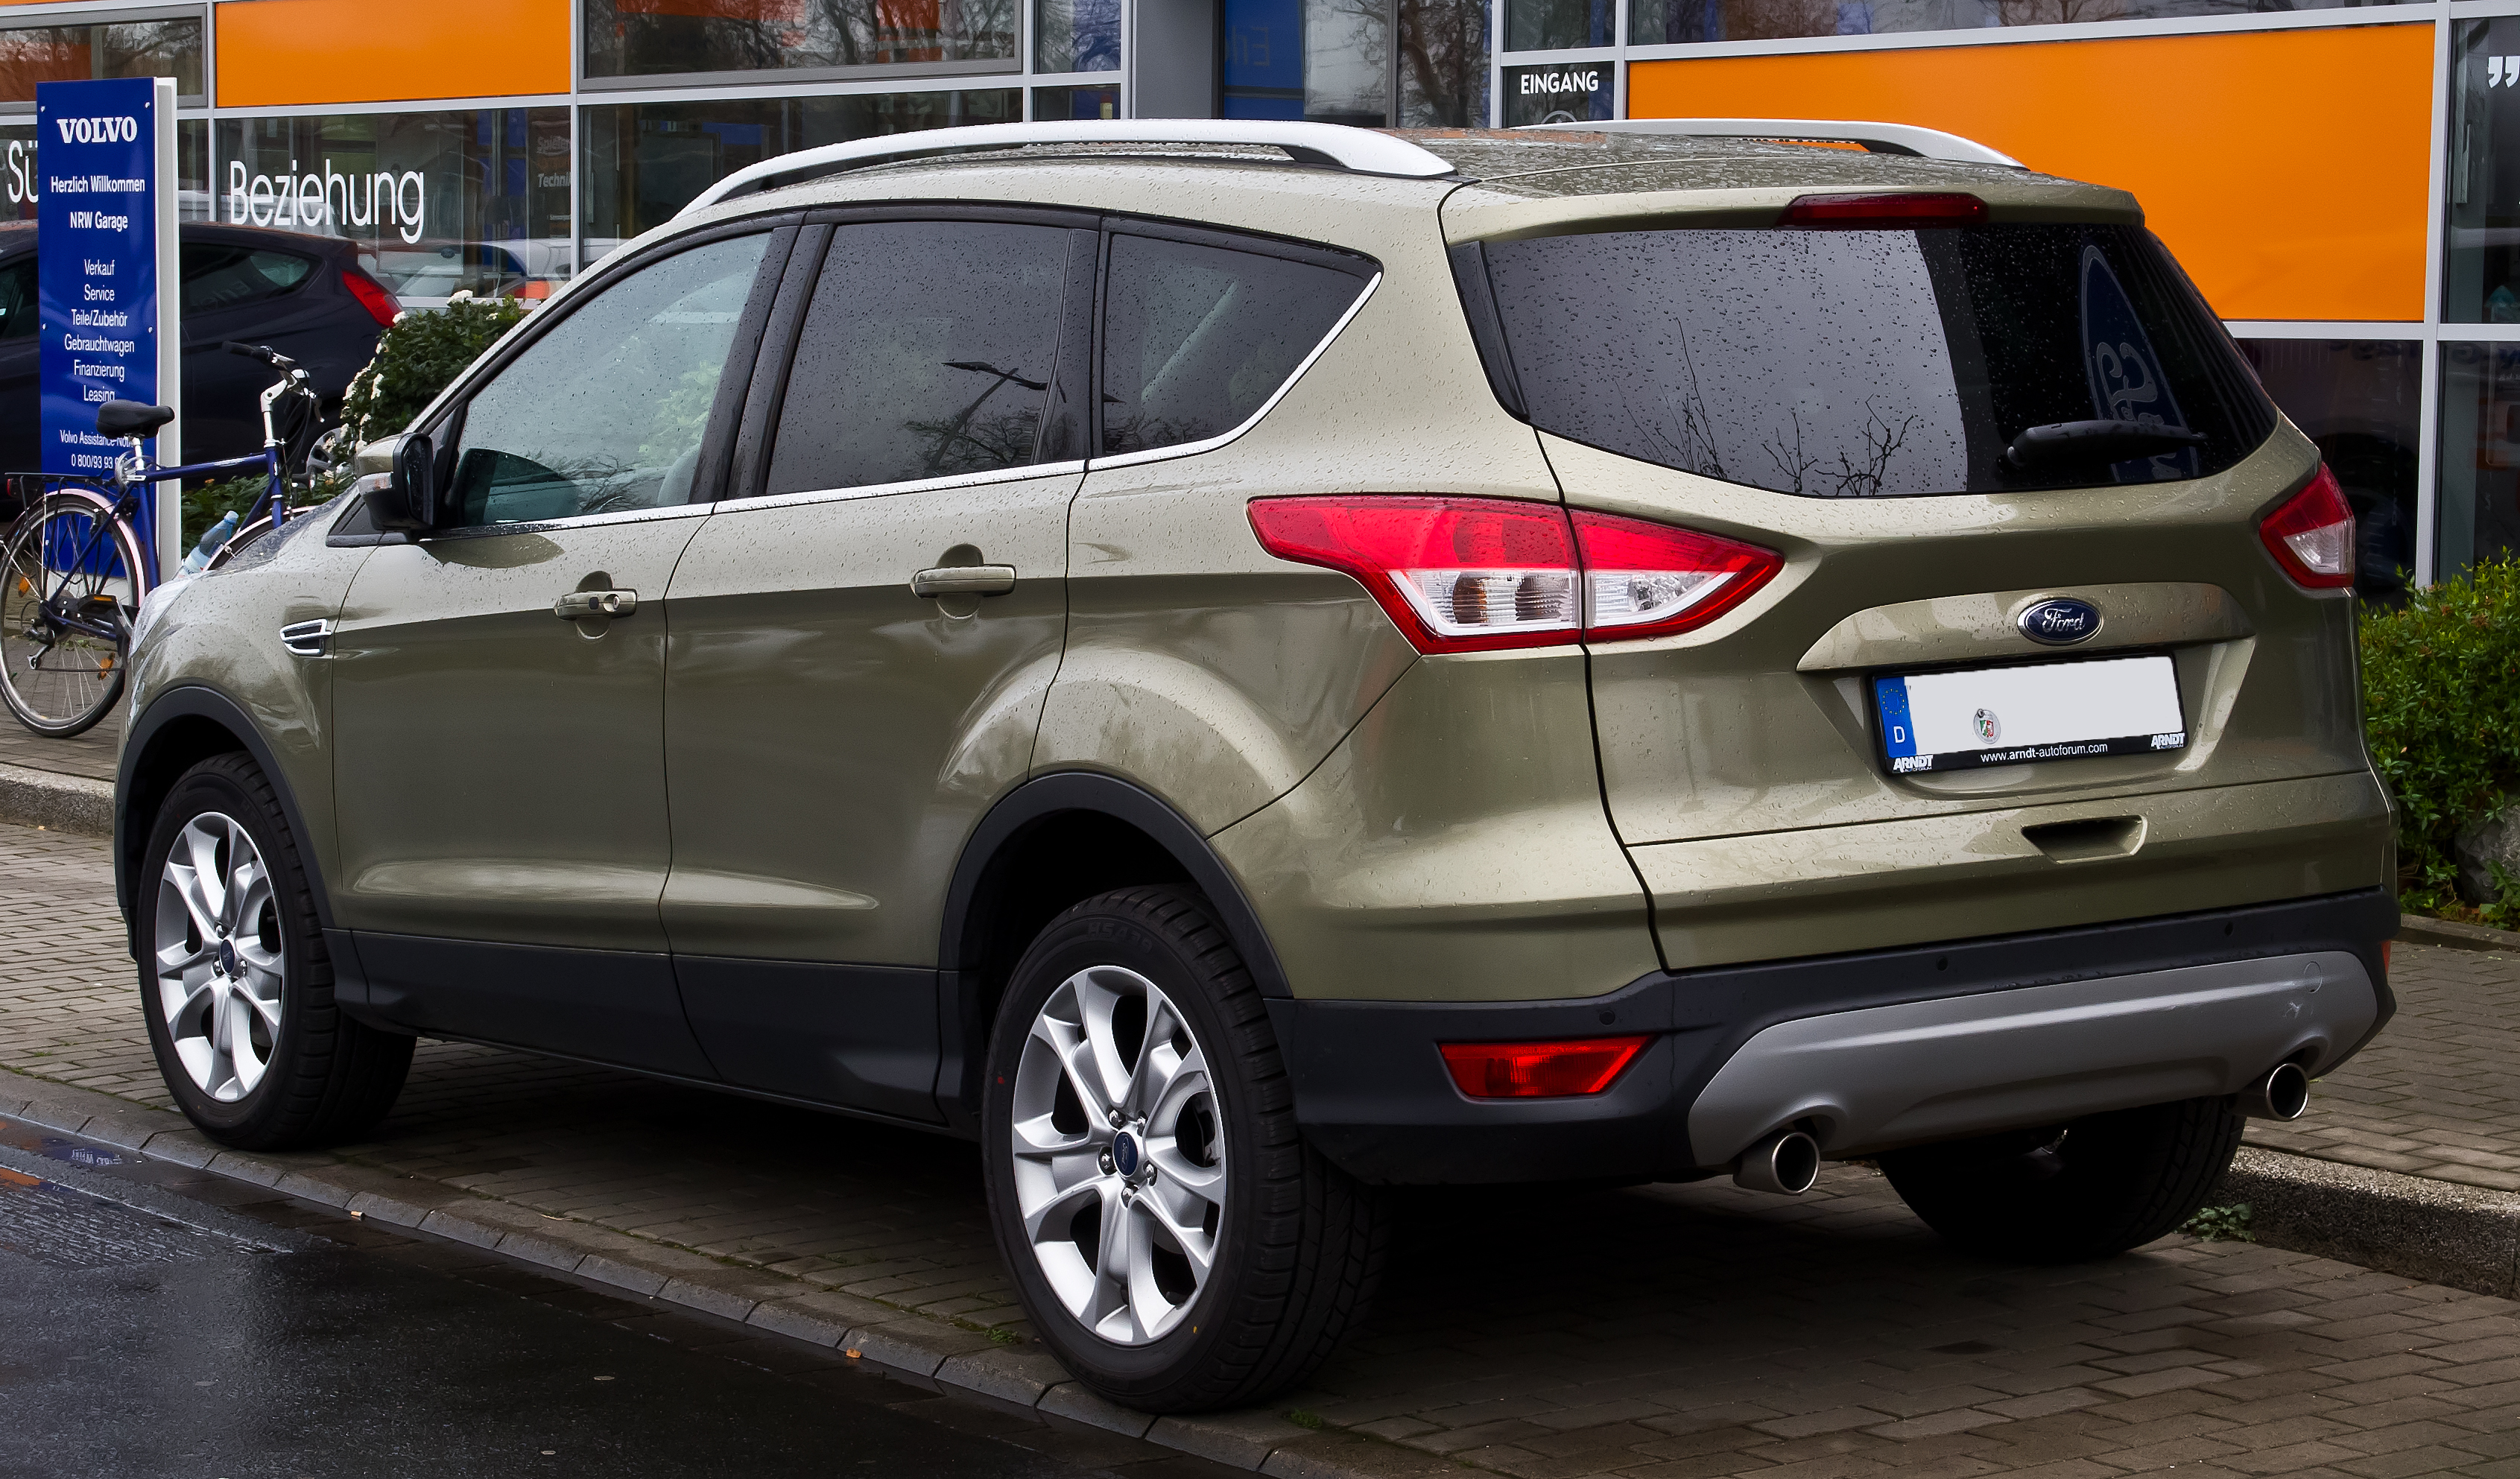 file ford kuga titanium ii heckansicht 22 m rz 2014 d wikimedia commons. Black Bedroom Furniture Sets. Home Design Ideas